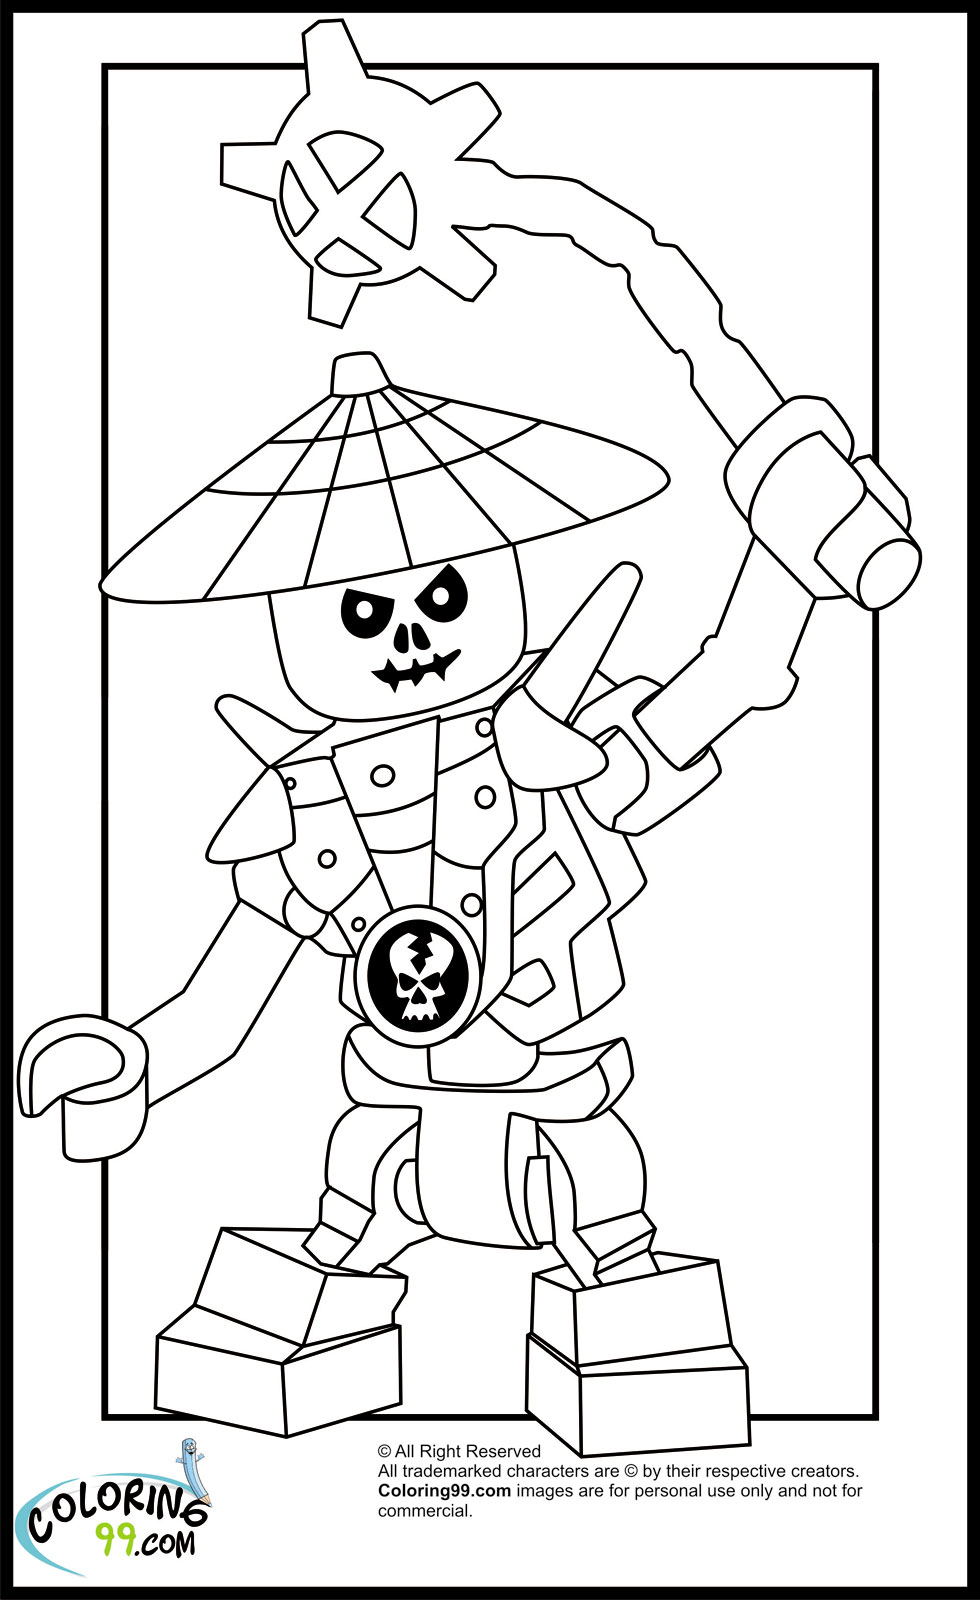 Impertinent image inside lego printable coloring pages